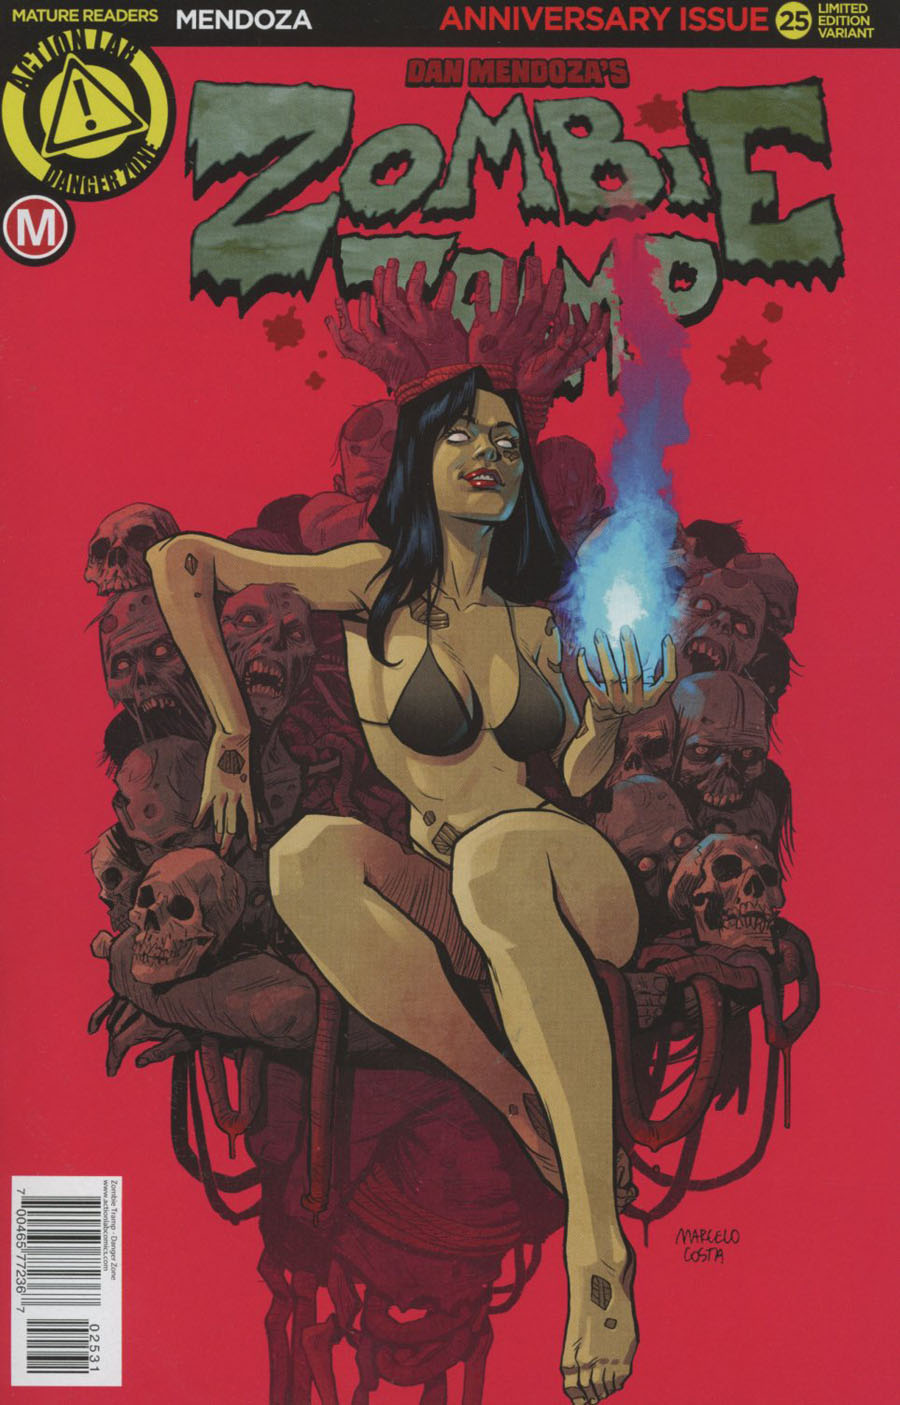 Zombie Tramp Vol 2 #25 Cover C Variant Marcelo Costa Artist Cover